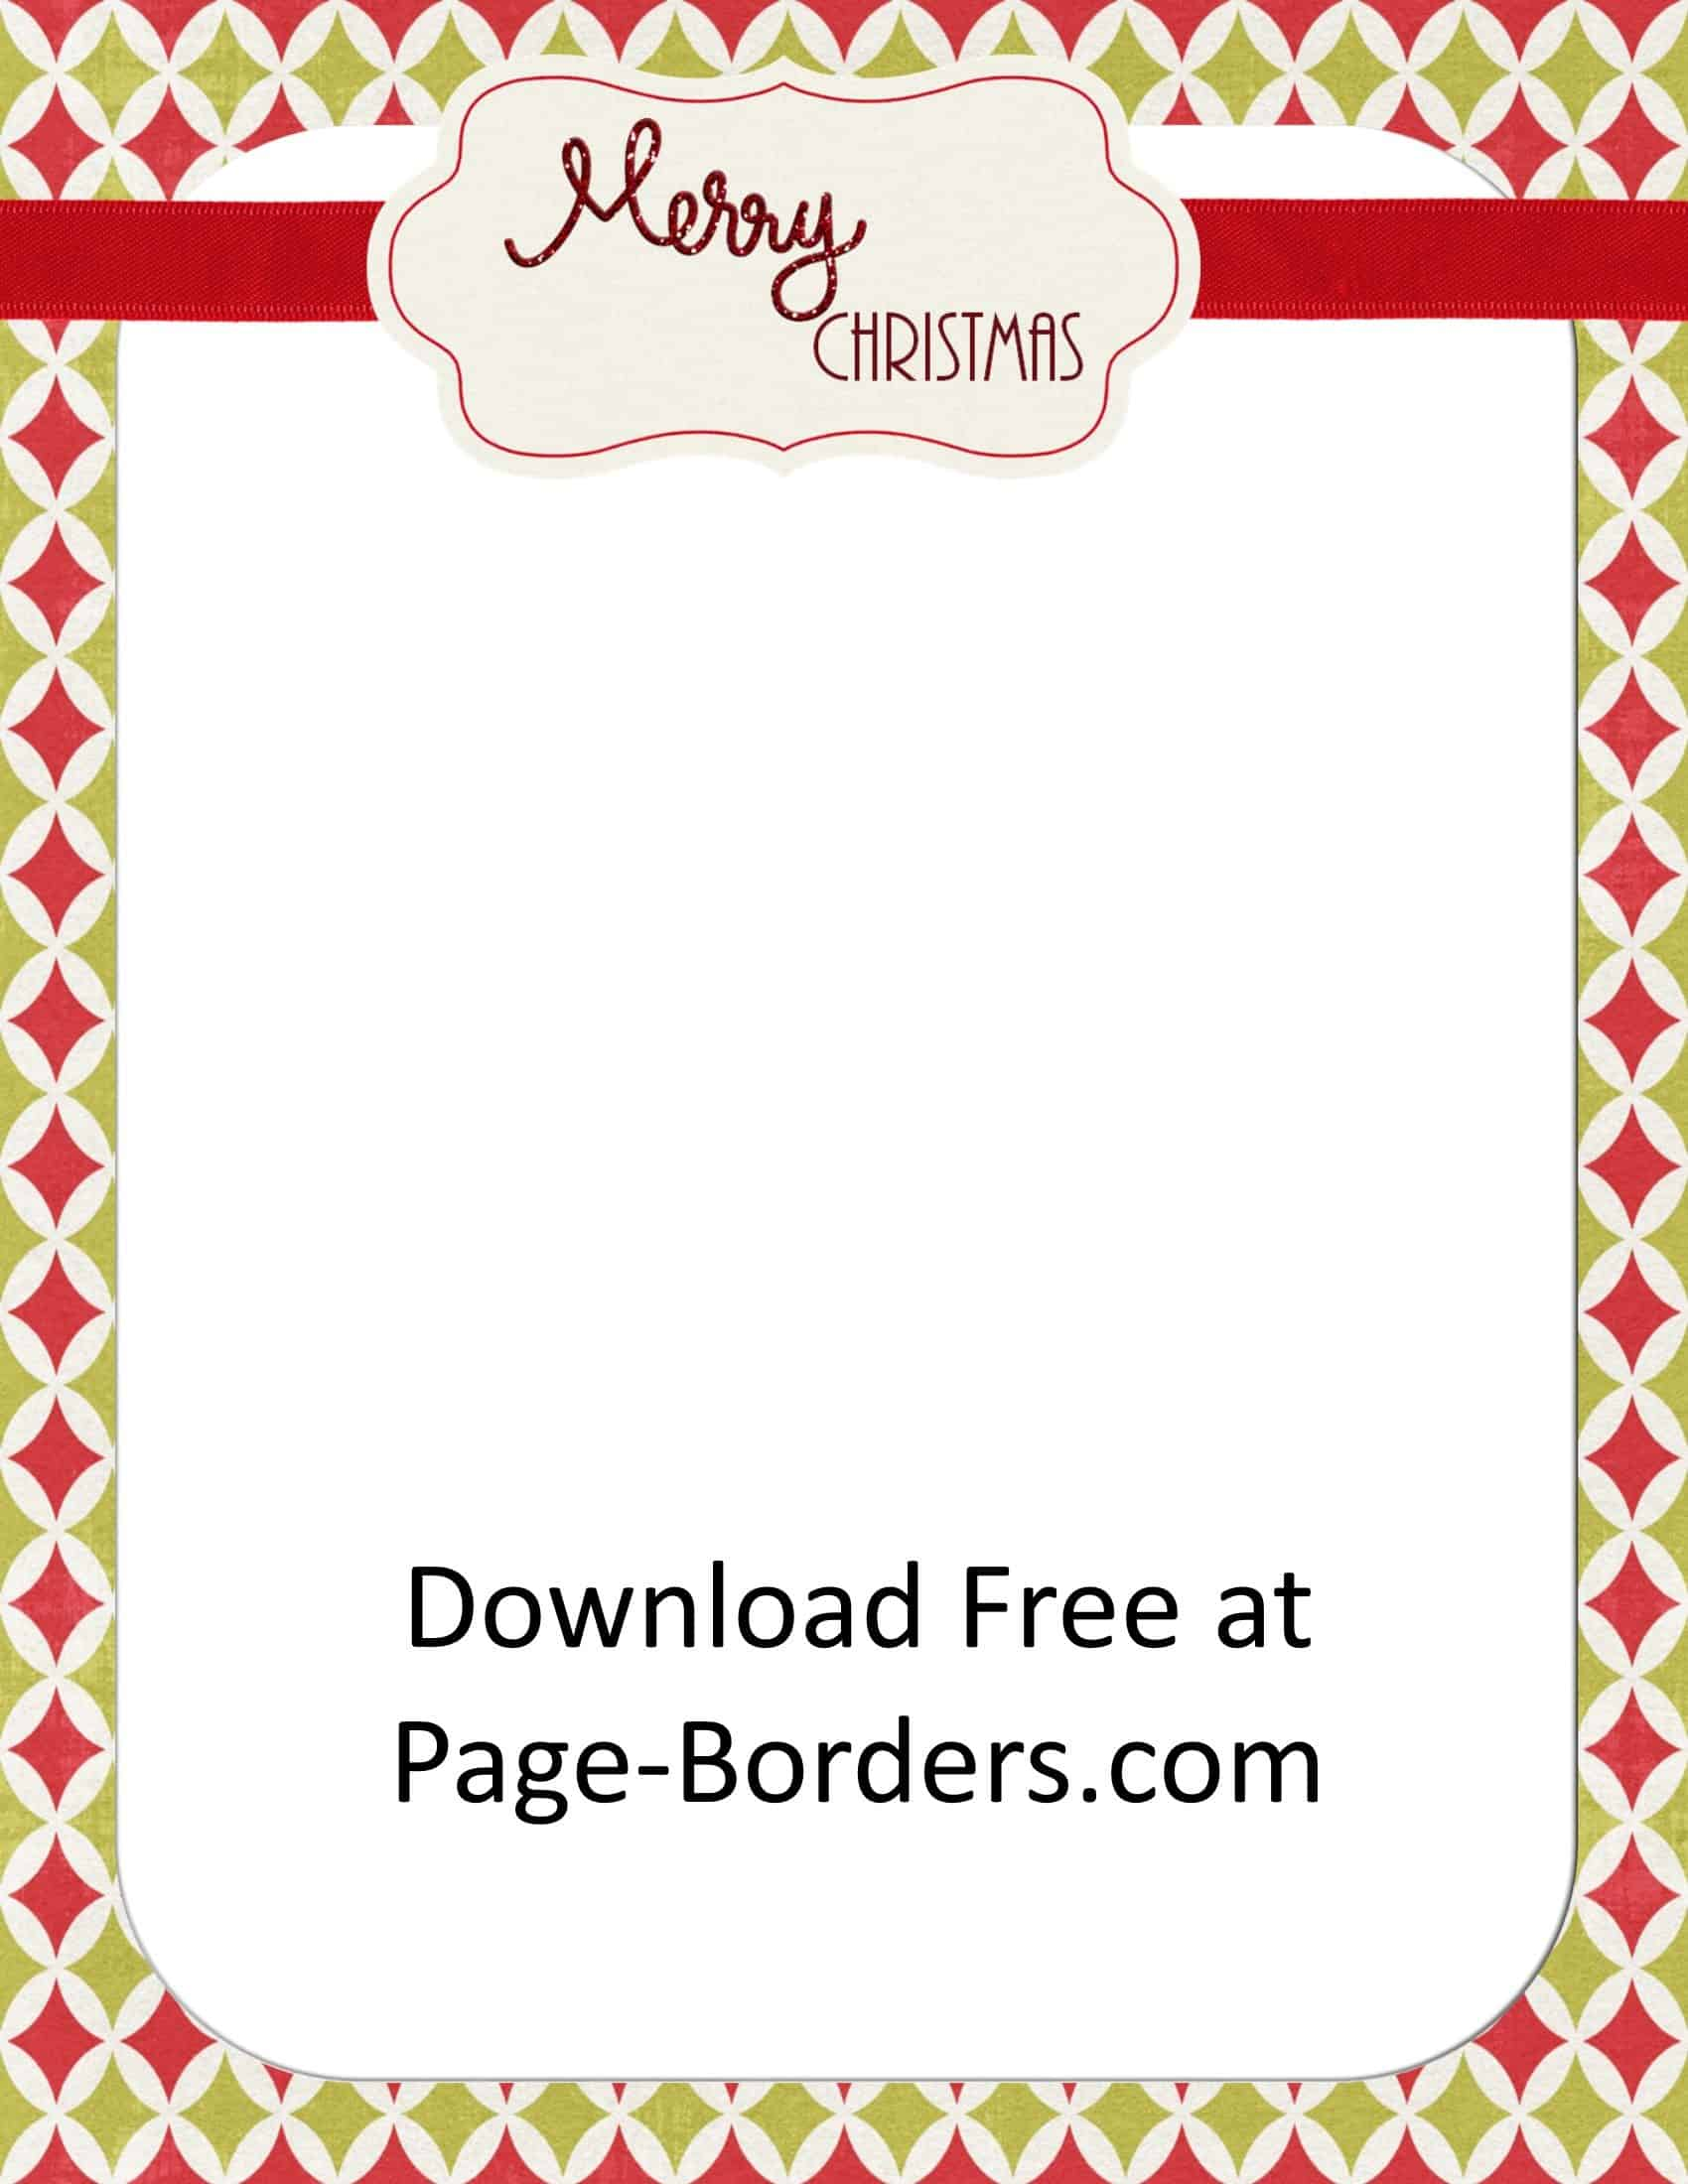 You can download or print these borders as is or you can add text and